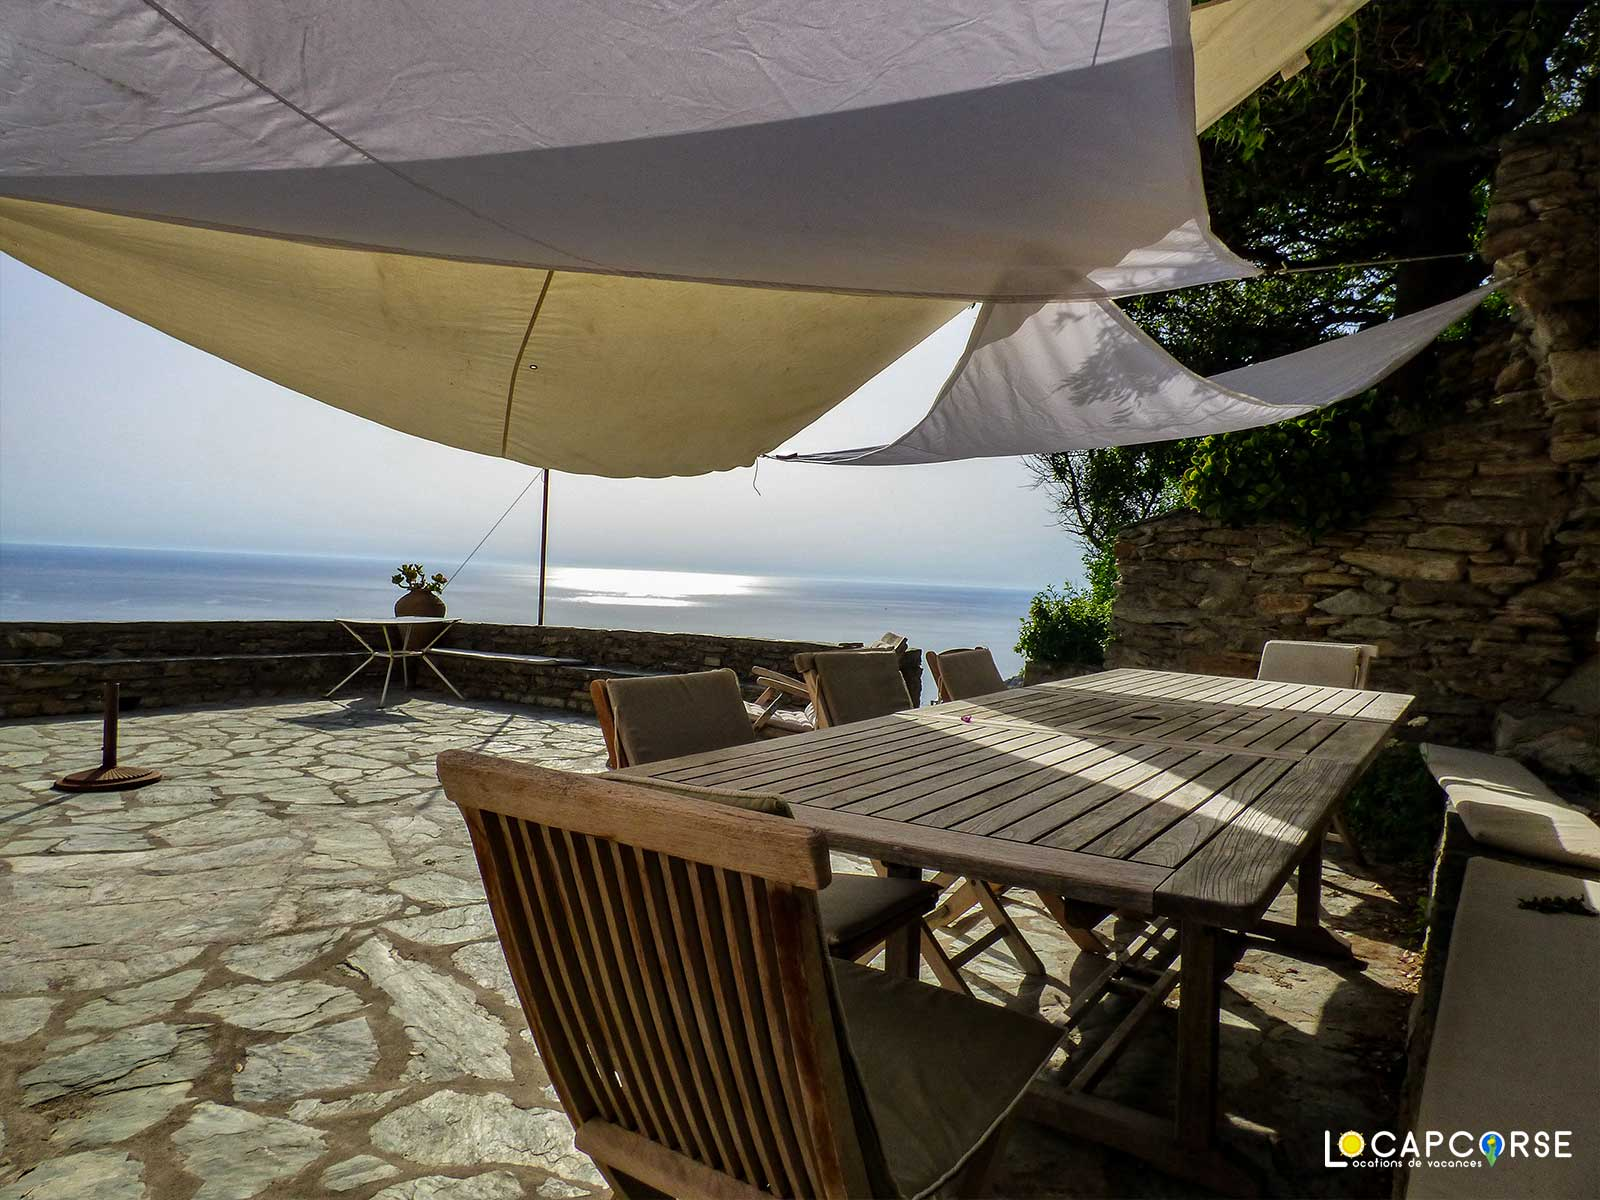 Locations Cap Corse - Holiday rental in Cannelle (Centuri), villa overlooking the sea and the bay of Centuri in Cap Corse.